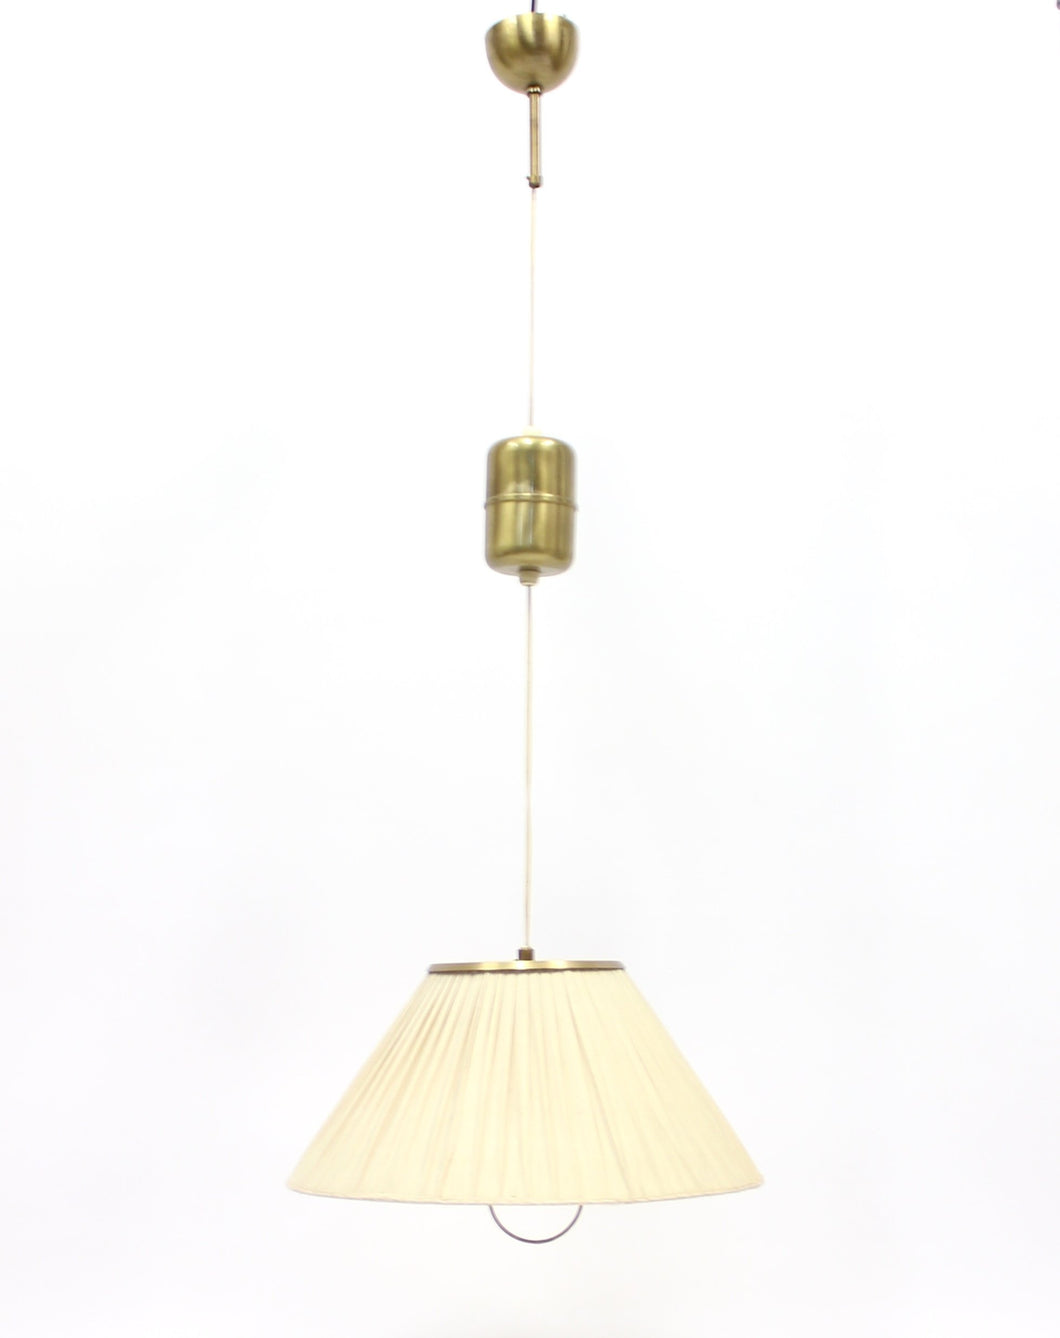 Rare model 1844 ceiling lamp by Josef Frank for Svenskt Tenn, 1950s